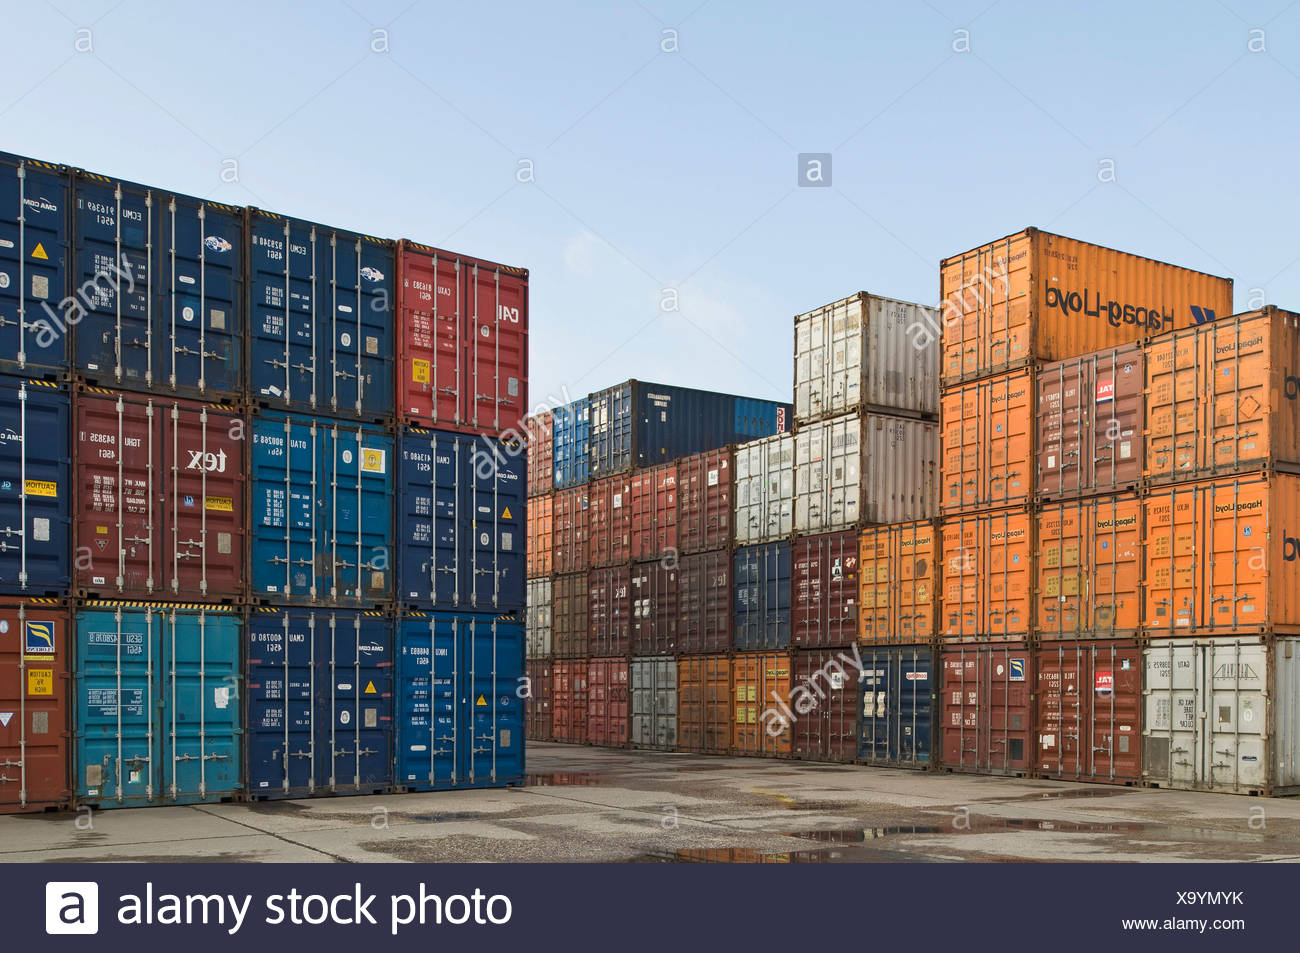 Bonn Container Terminal Overlooking Stacked Oversea Containers In